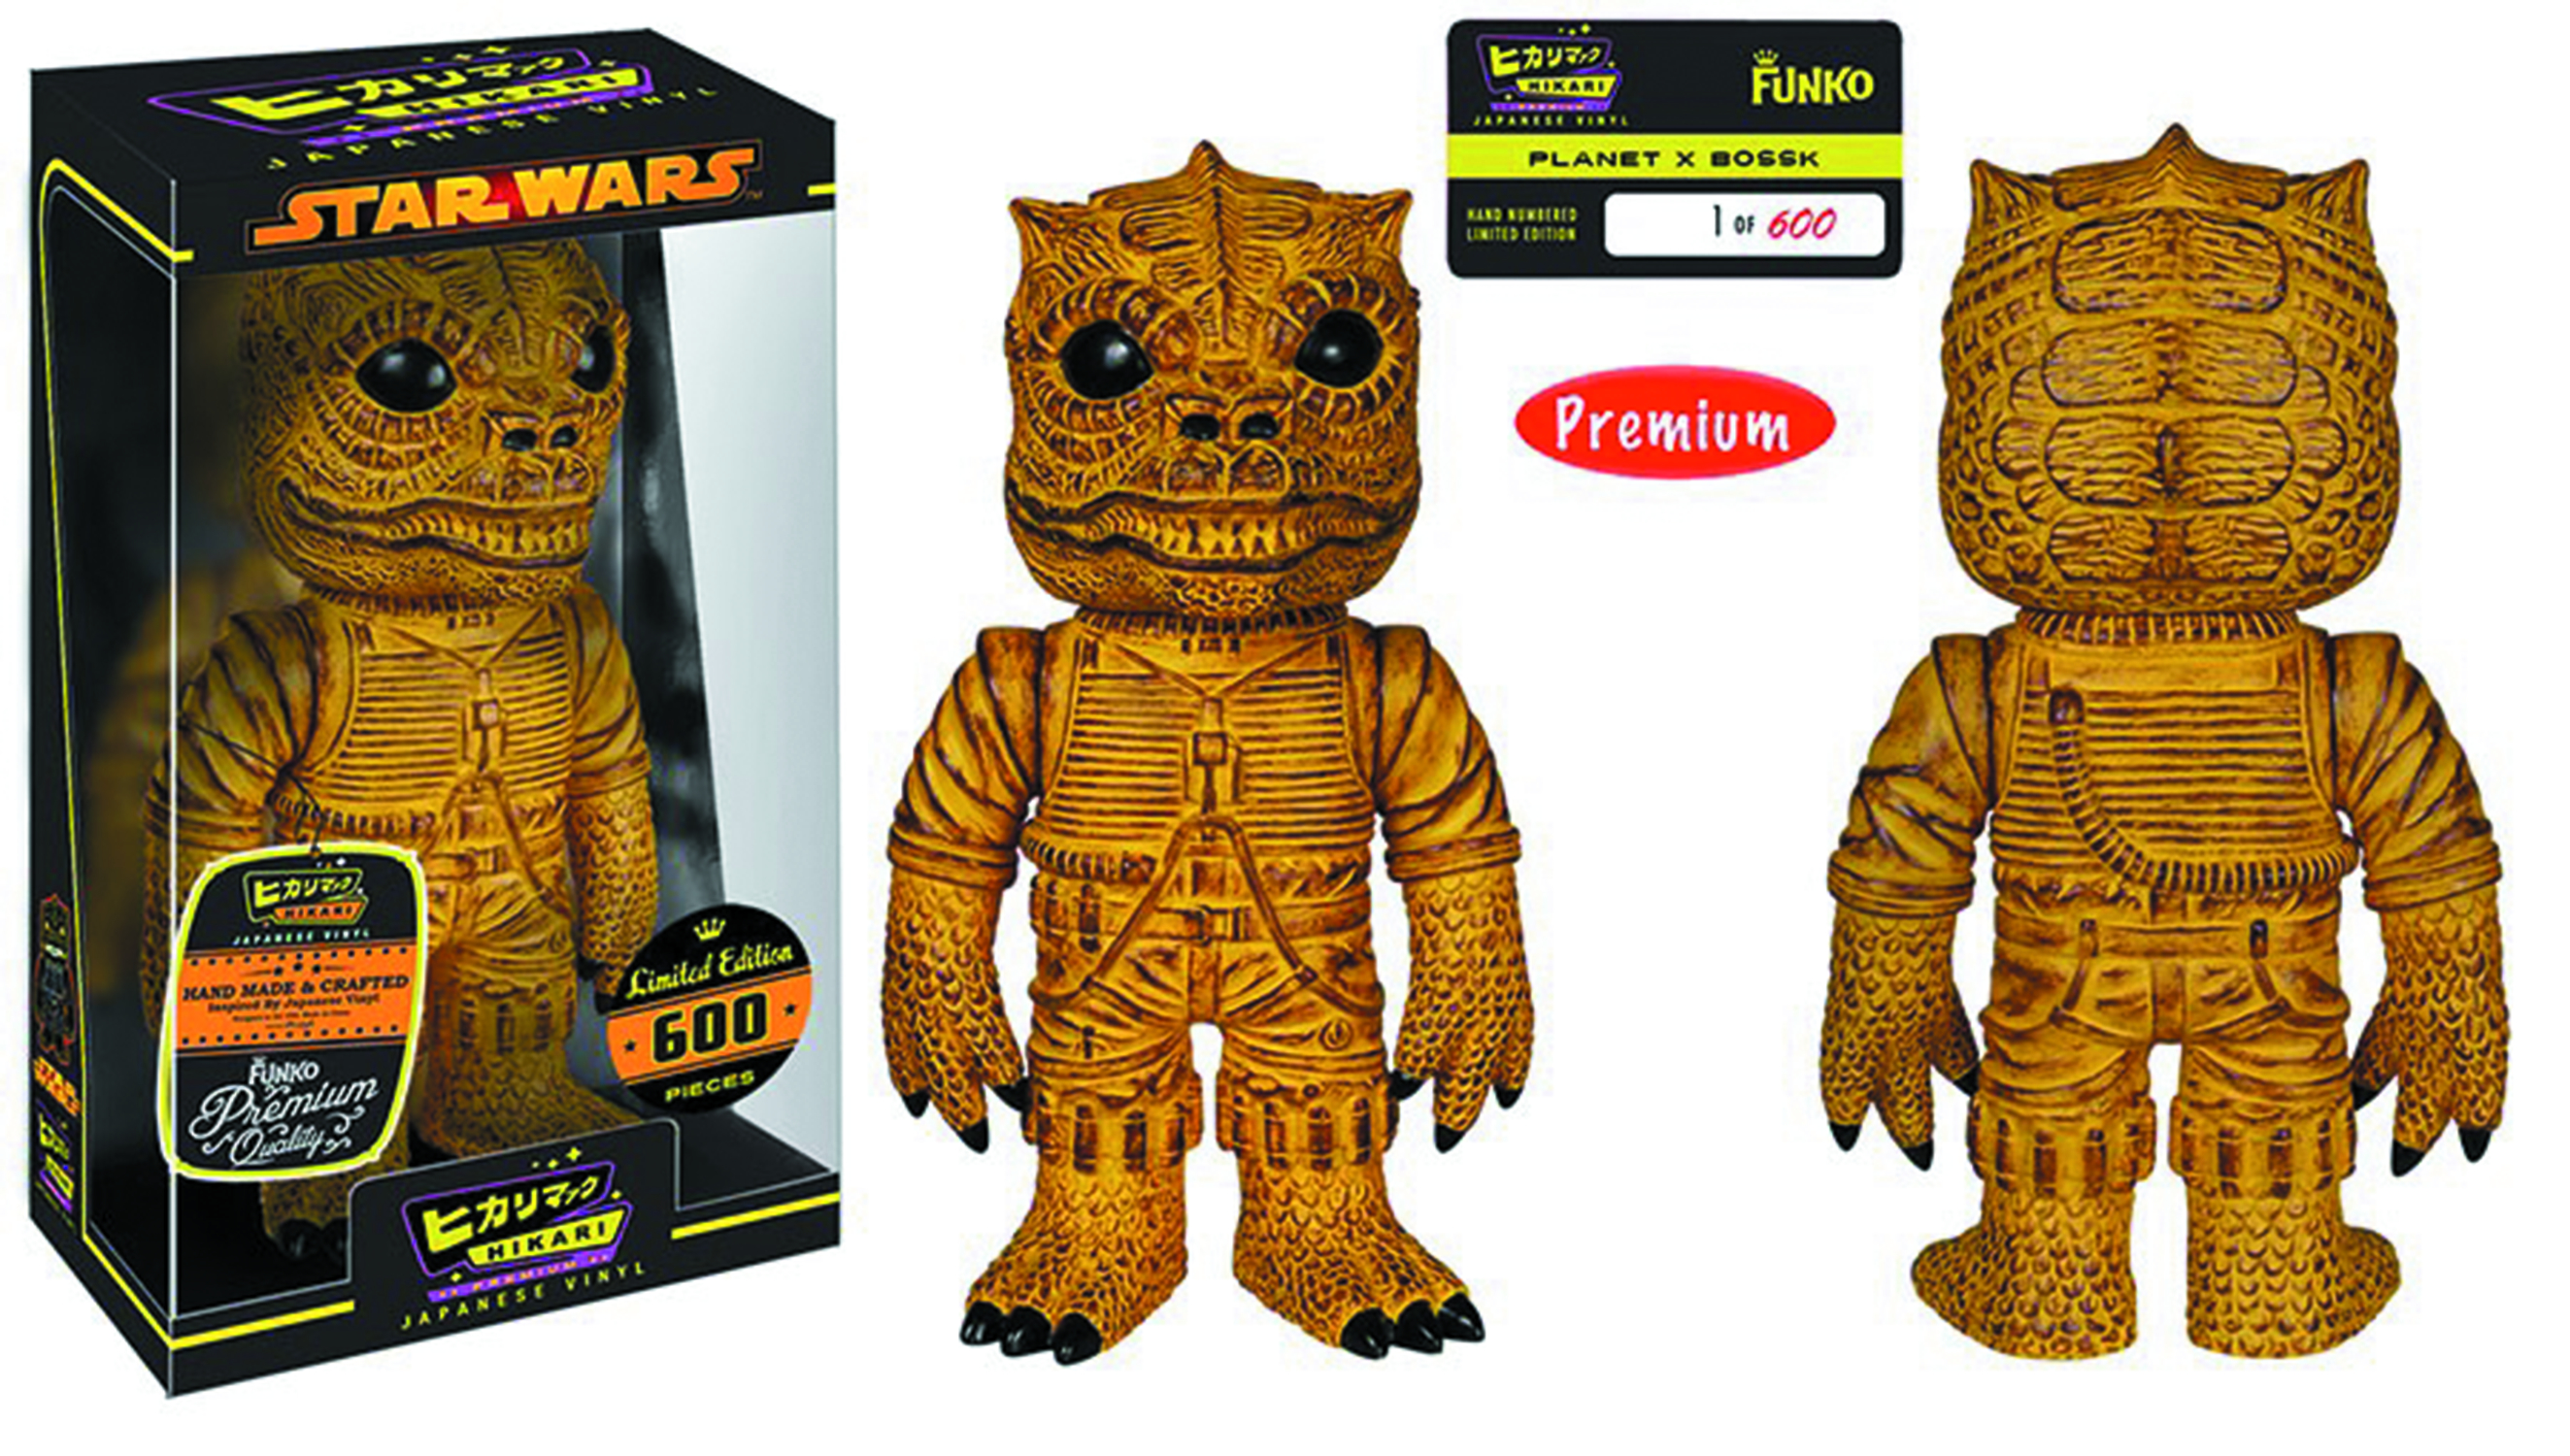 Jul158196 Hikari Star Wars Planet X Bossk Premium Ltd Ed